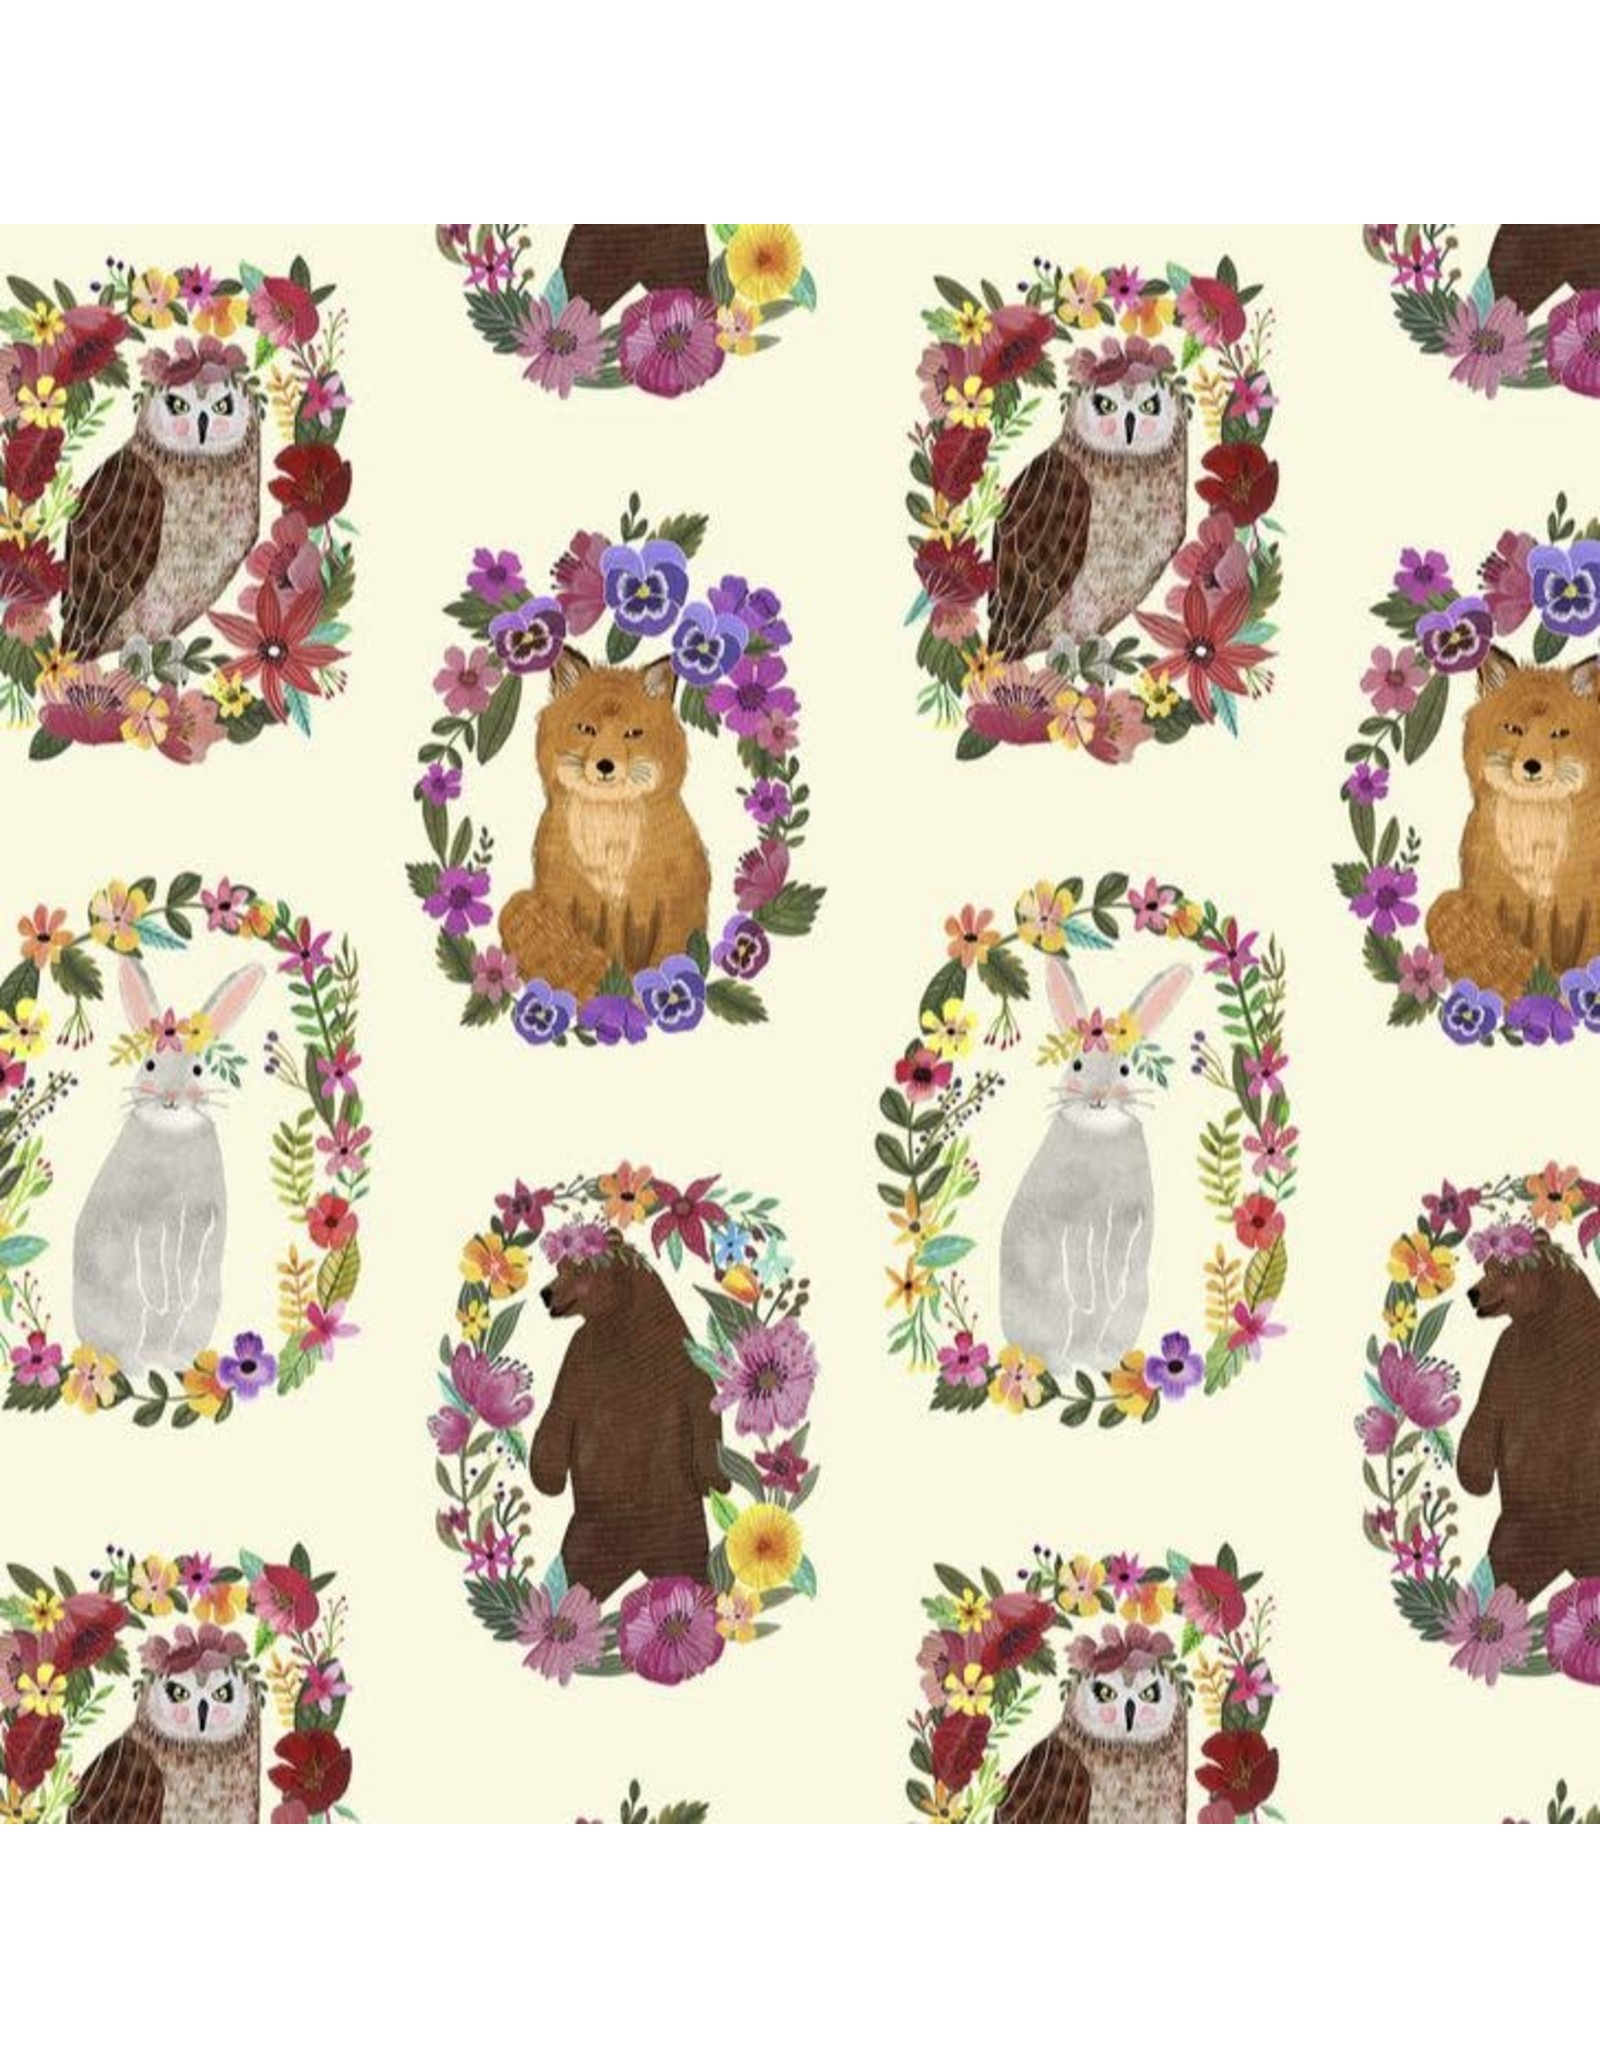 Mia Charro ON SALE-Forest Friends, Wood Rings in Ivory, Fabric Half-Yards 129.104.05.1